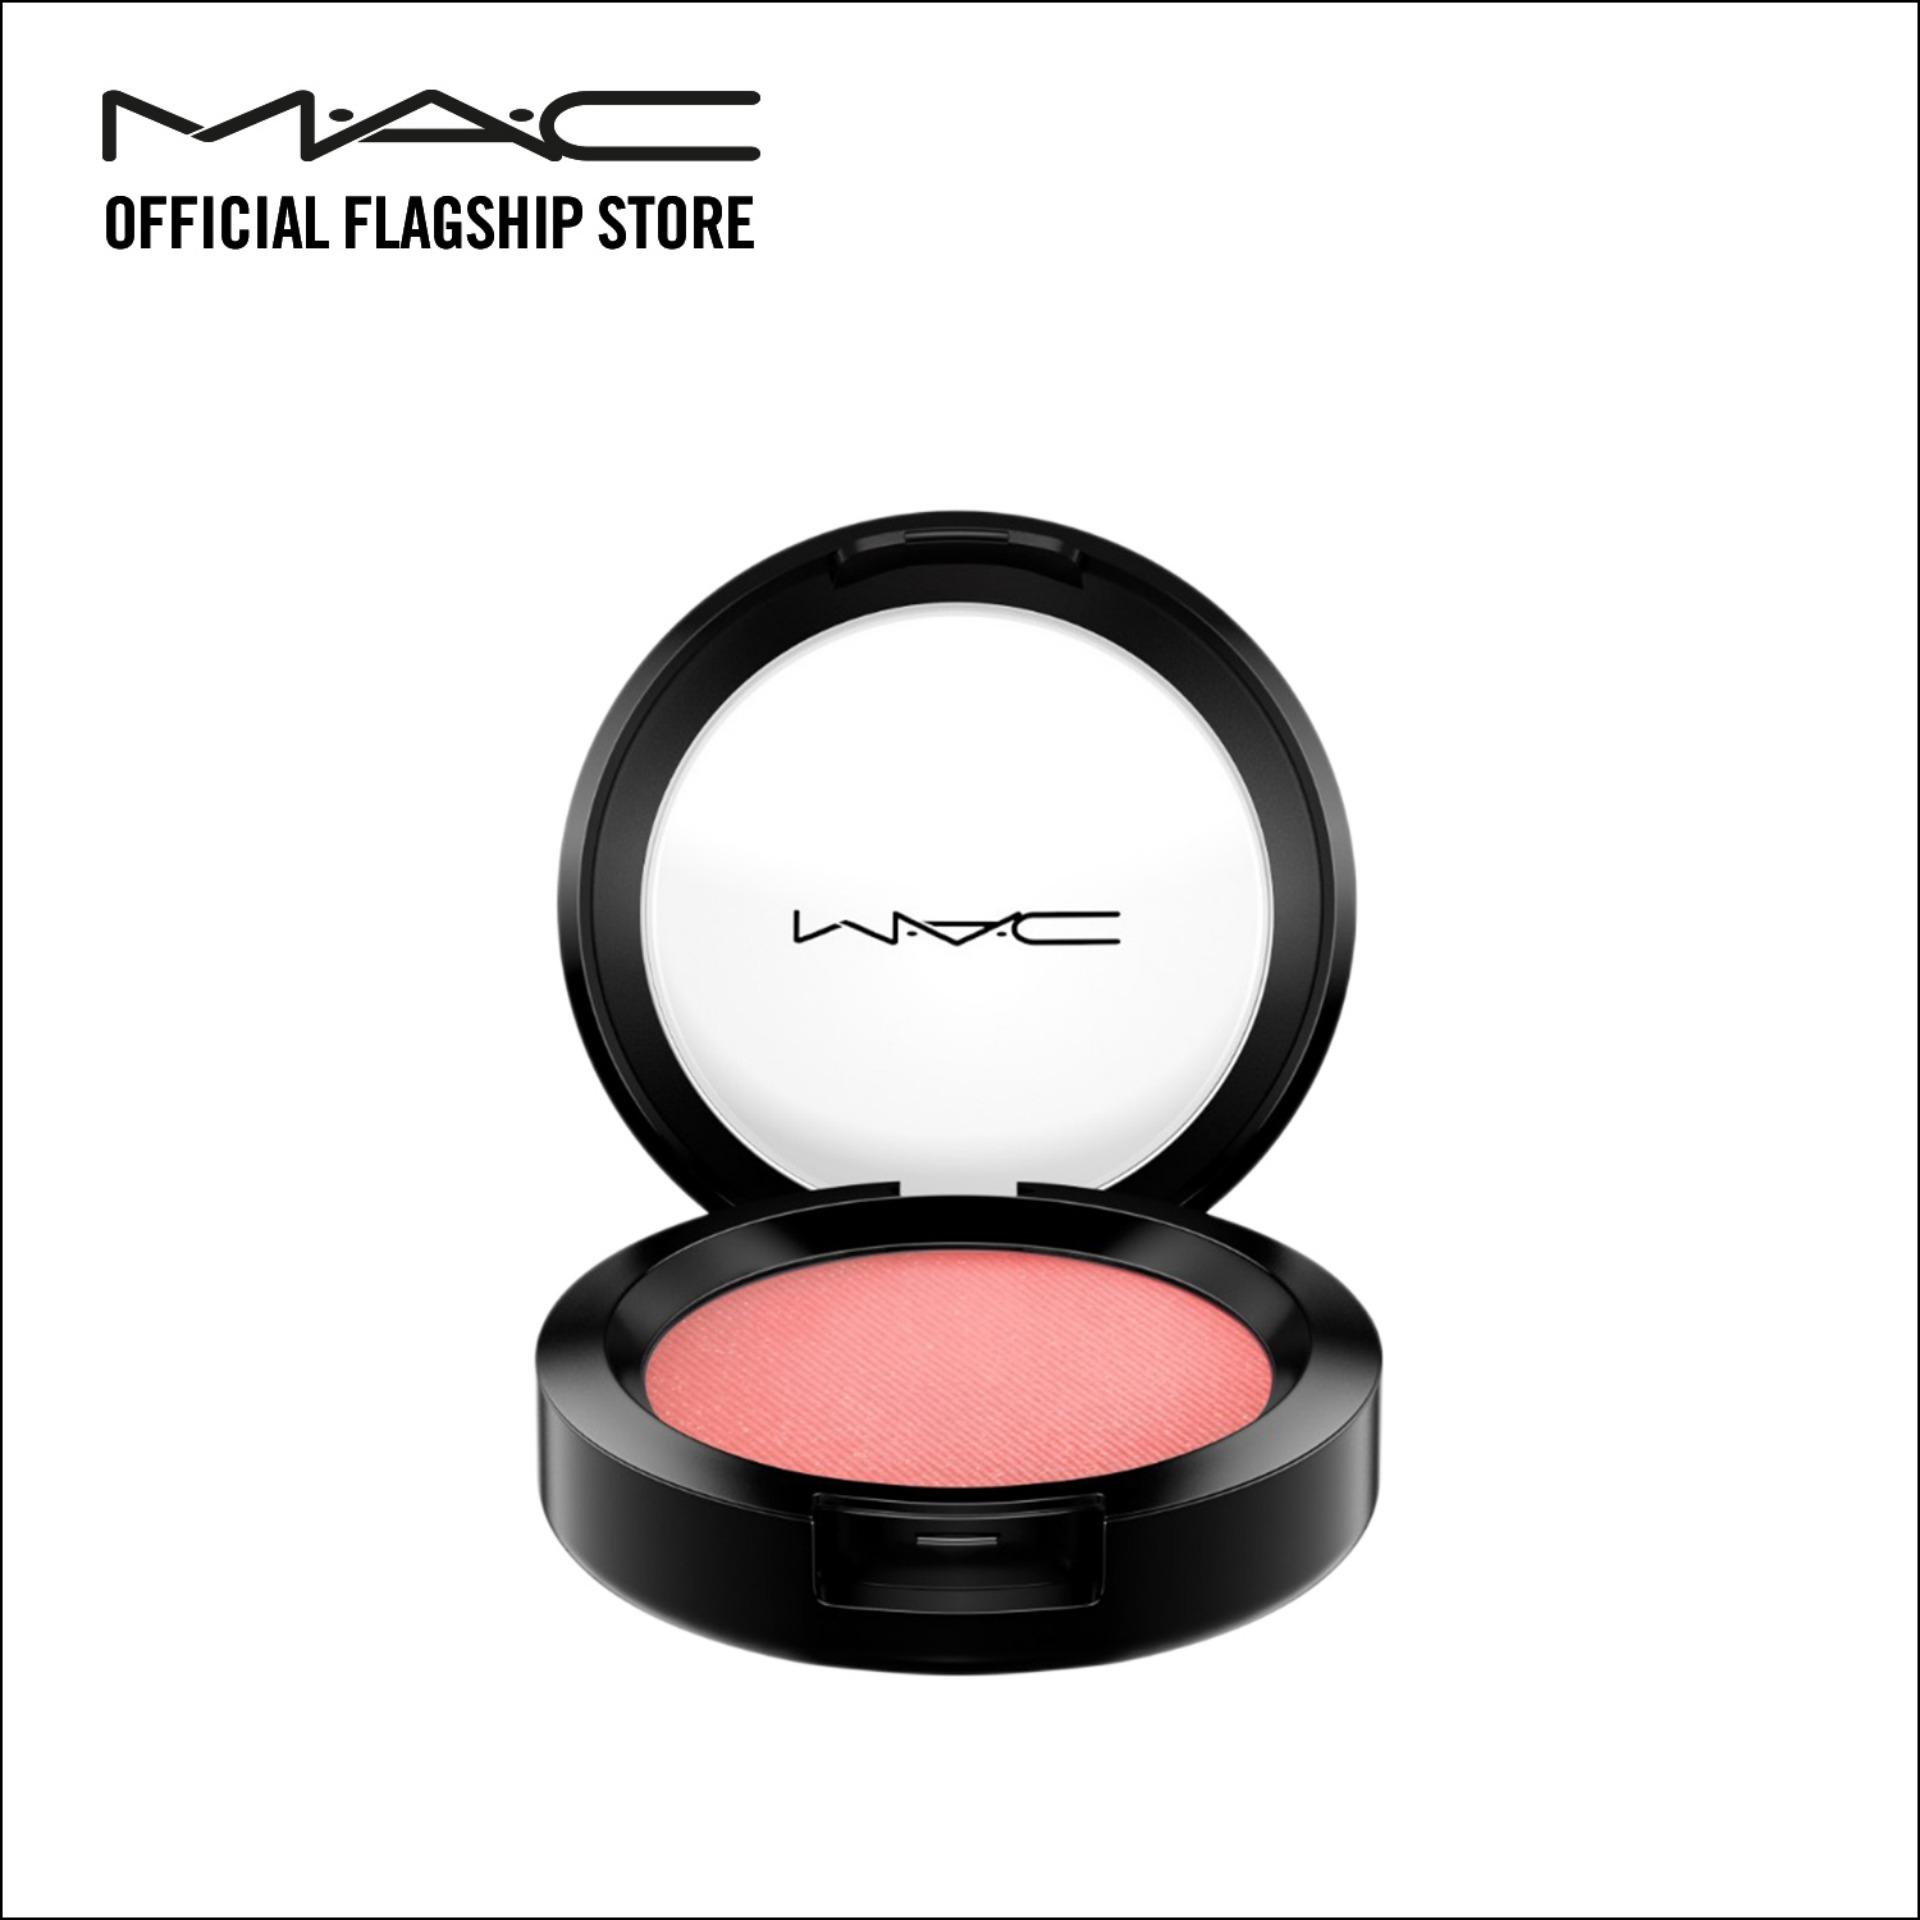 Phấn má hồng MAC Sheertone Blush 6g